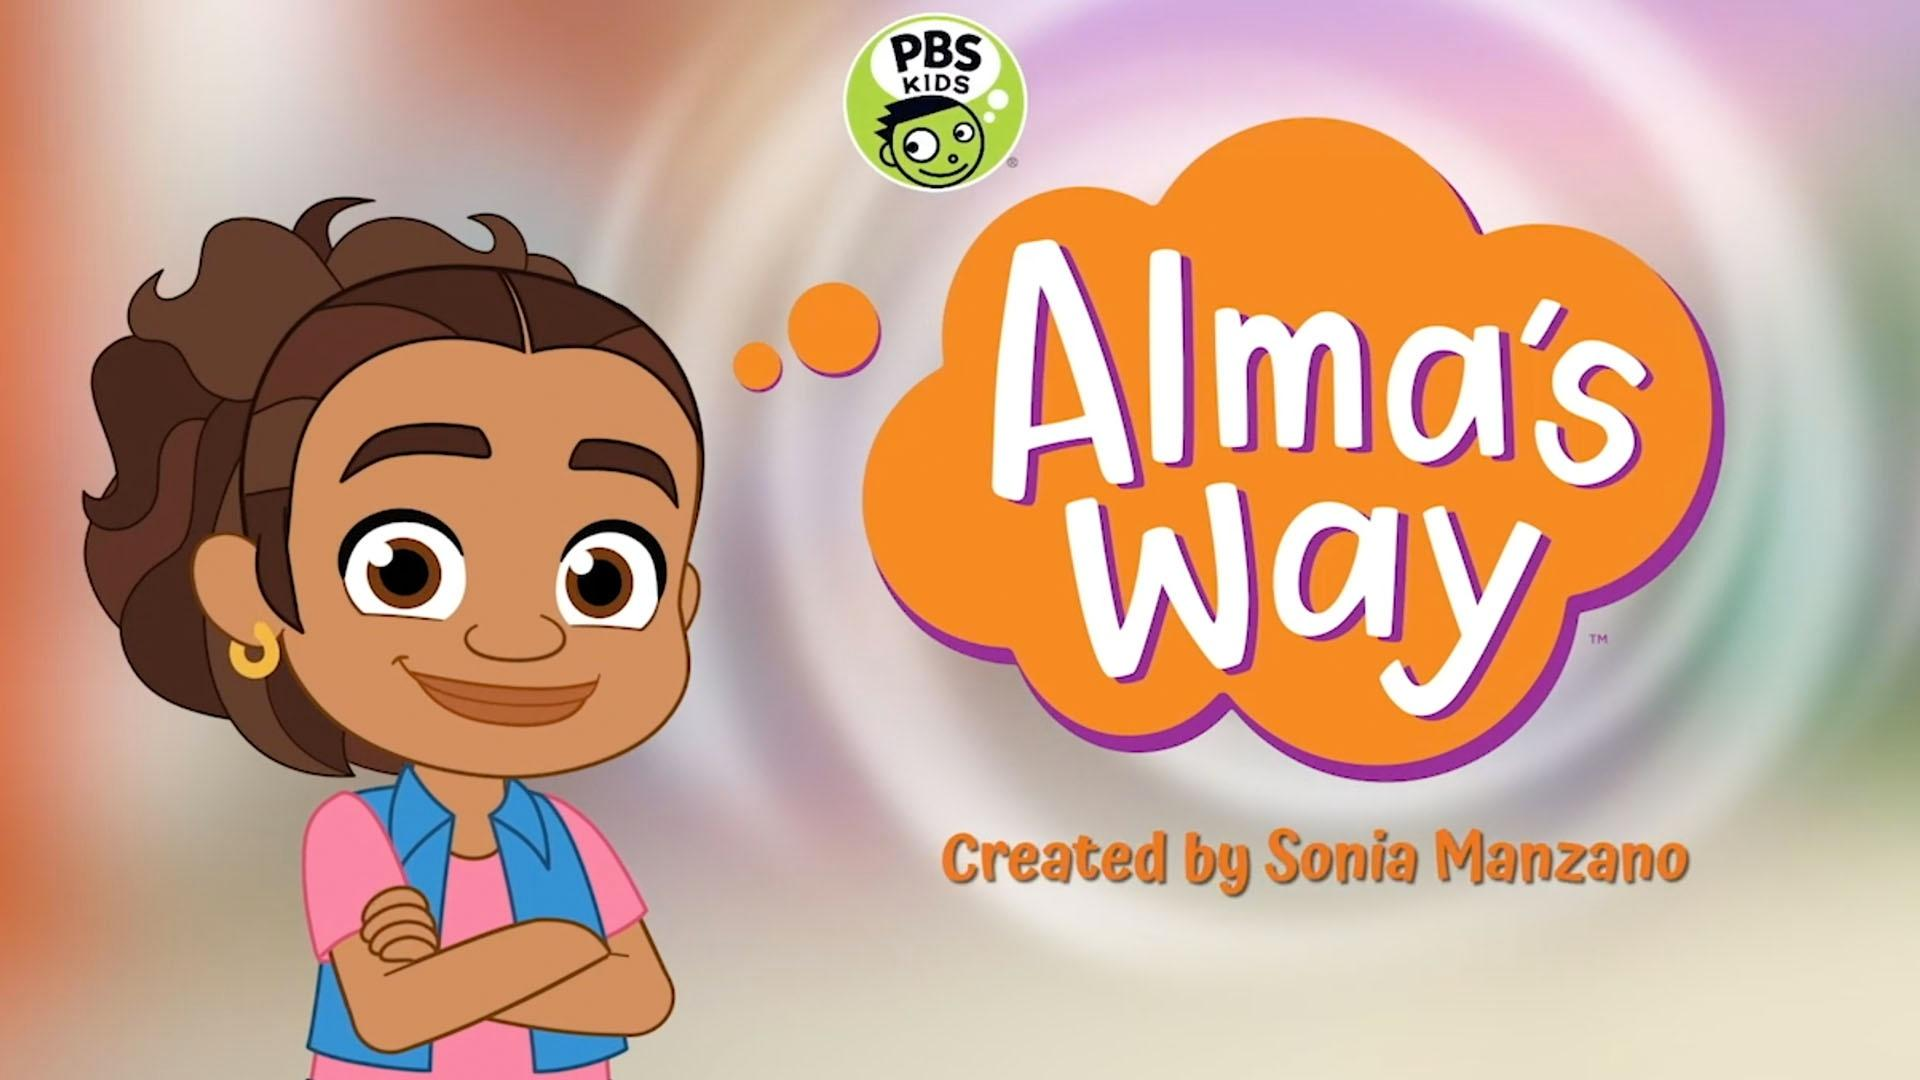 ALMA'S WAY Arrives on PBS, Landon Forlenza Books Feature Film, and more!